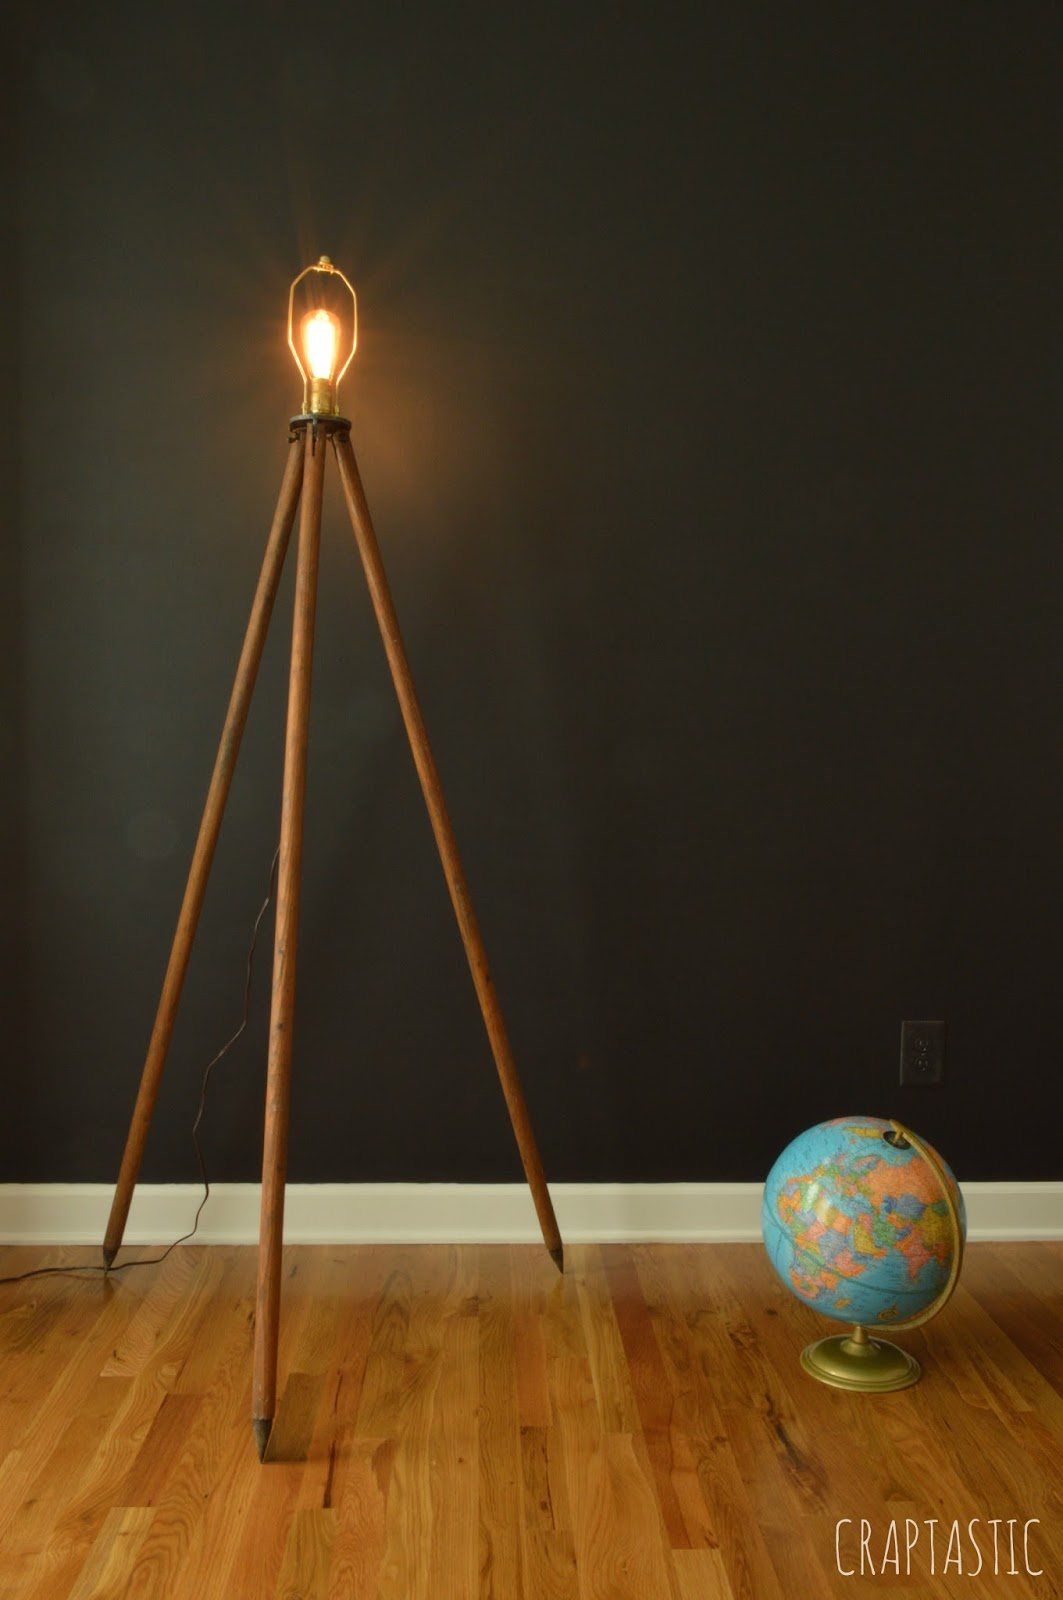 Decor awesome tripod lamp for interior lighting ideas tripod floor lamp ikea tripod lamp target wood lamp solutioingenieria Image collections